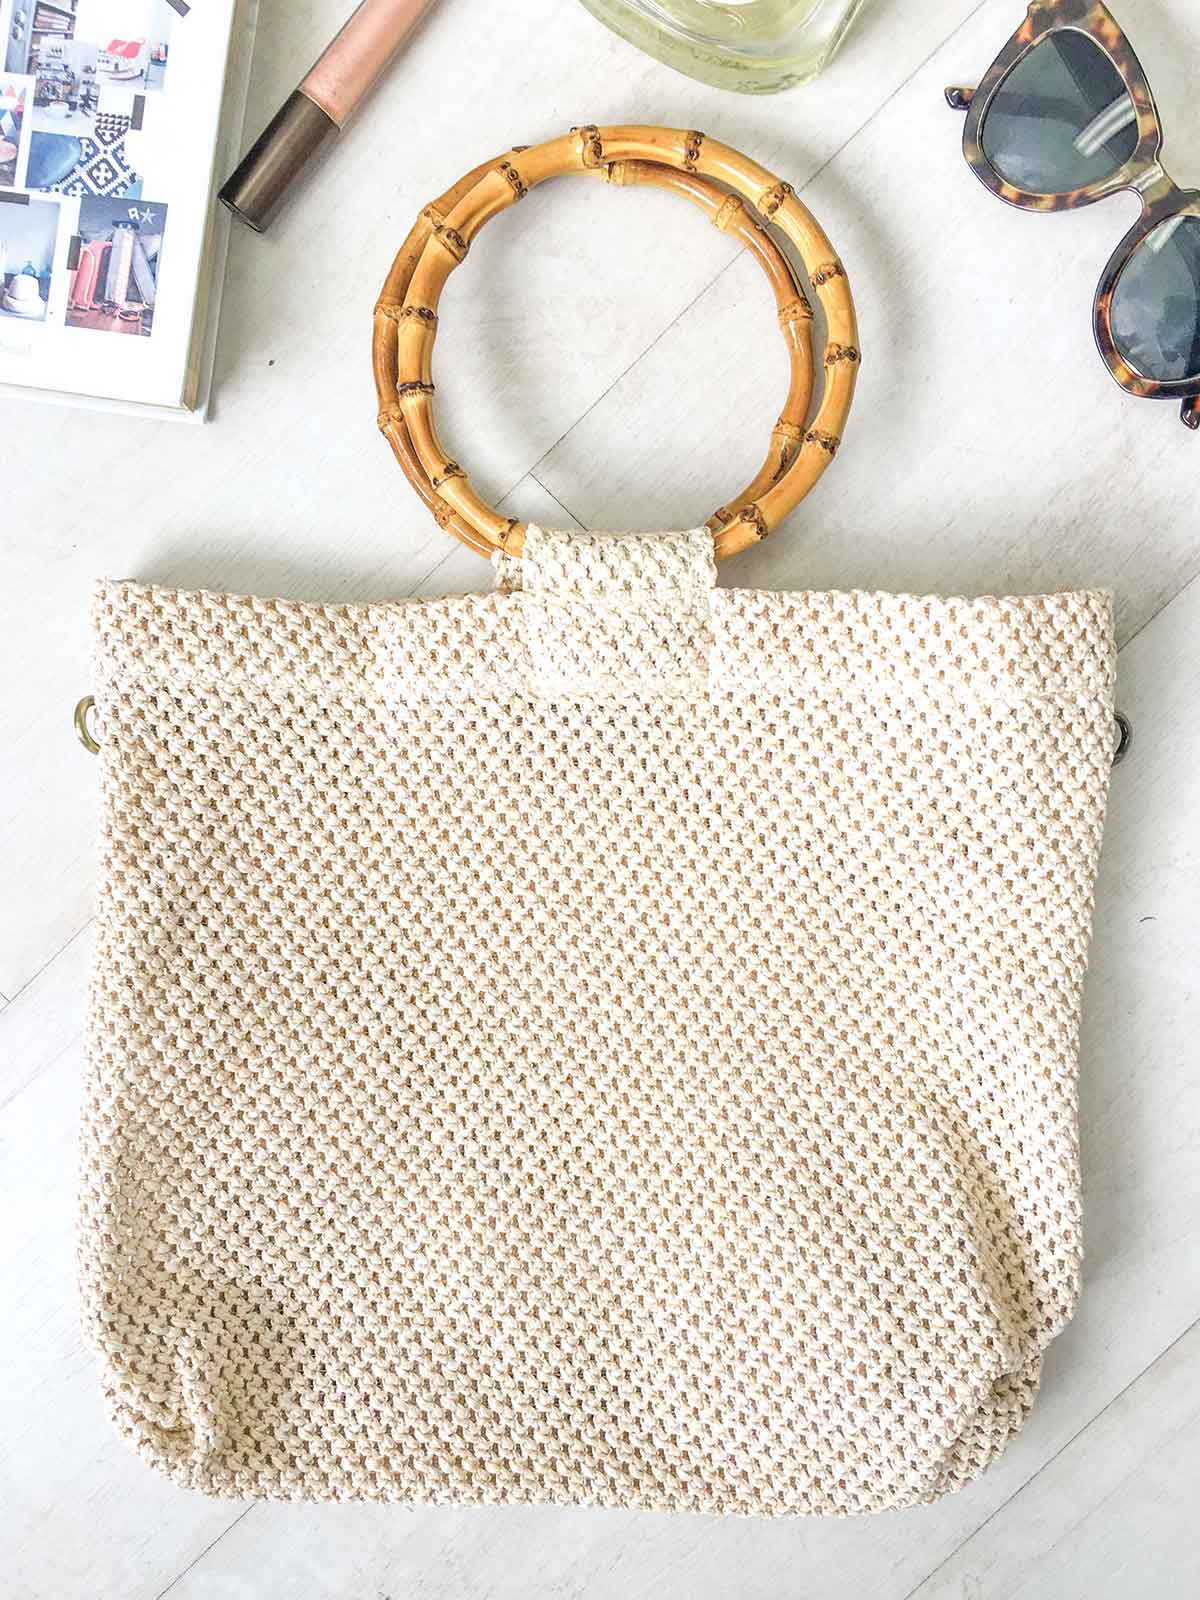 GYPSY COLLECTIVE BAMBOO TOTE (PLUS BONUS BAG INSIDE)